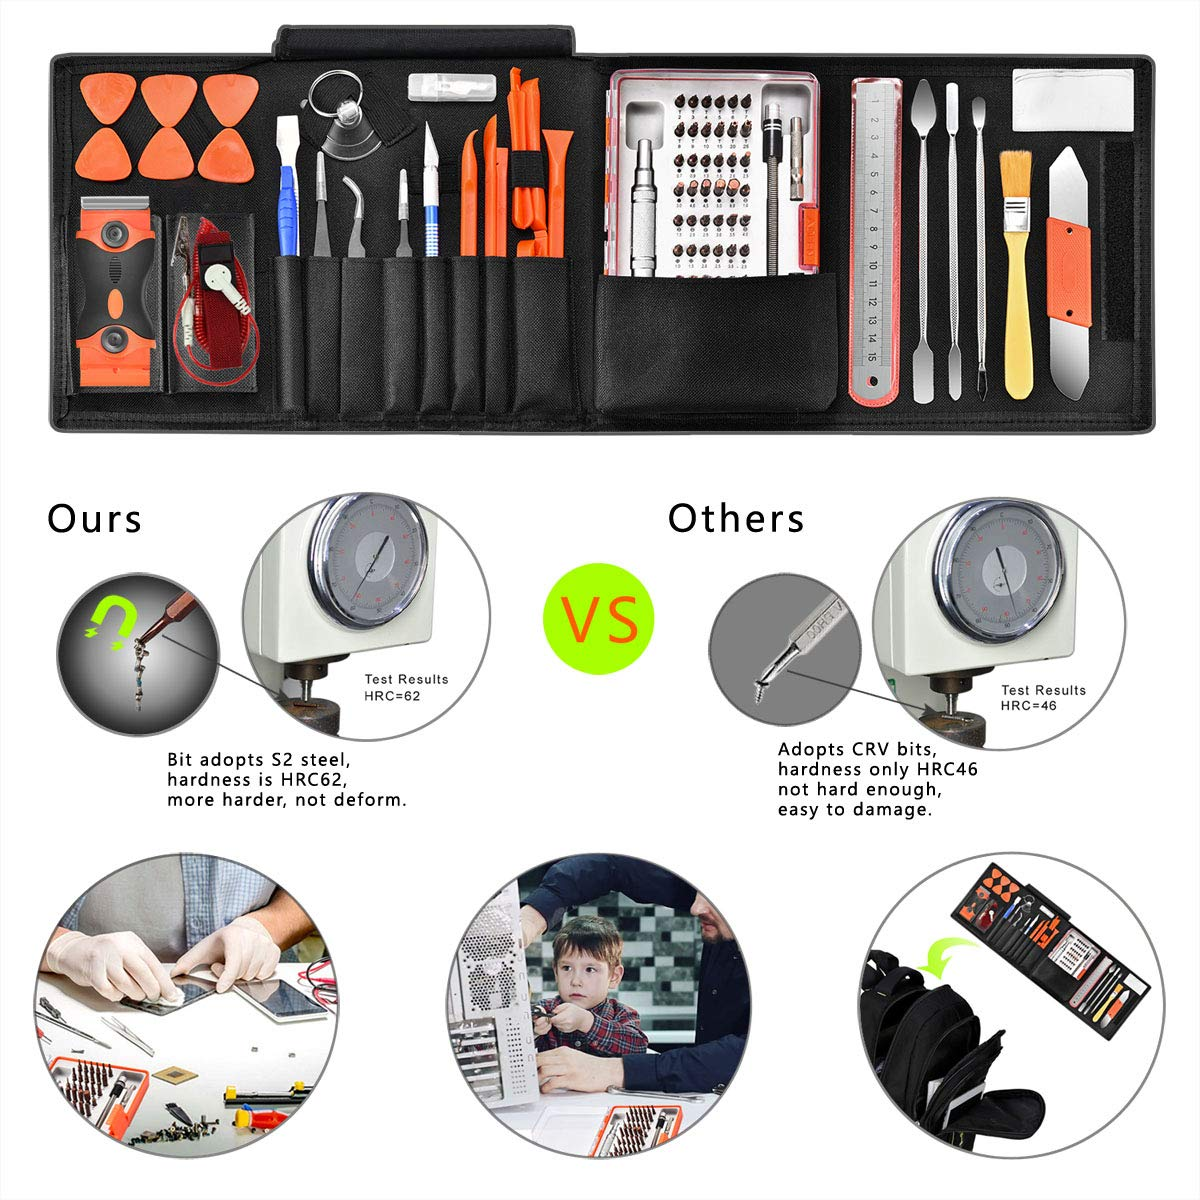 96 in 1 Screwdriver Set Precision,Full Electronic Repair Tool Kit Professional,S2 Steel for Fix iPhone/Computer/Mobile Phone/iPad/MacBook/Laptop/Watch/Game Console DIY Pry Open Replace Screen by GANGZHIBAO (Image #7)